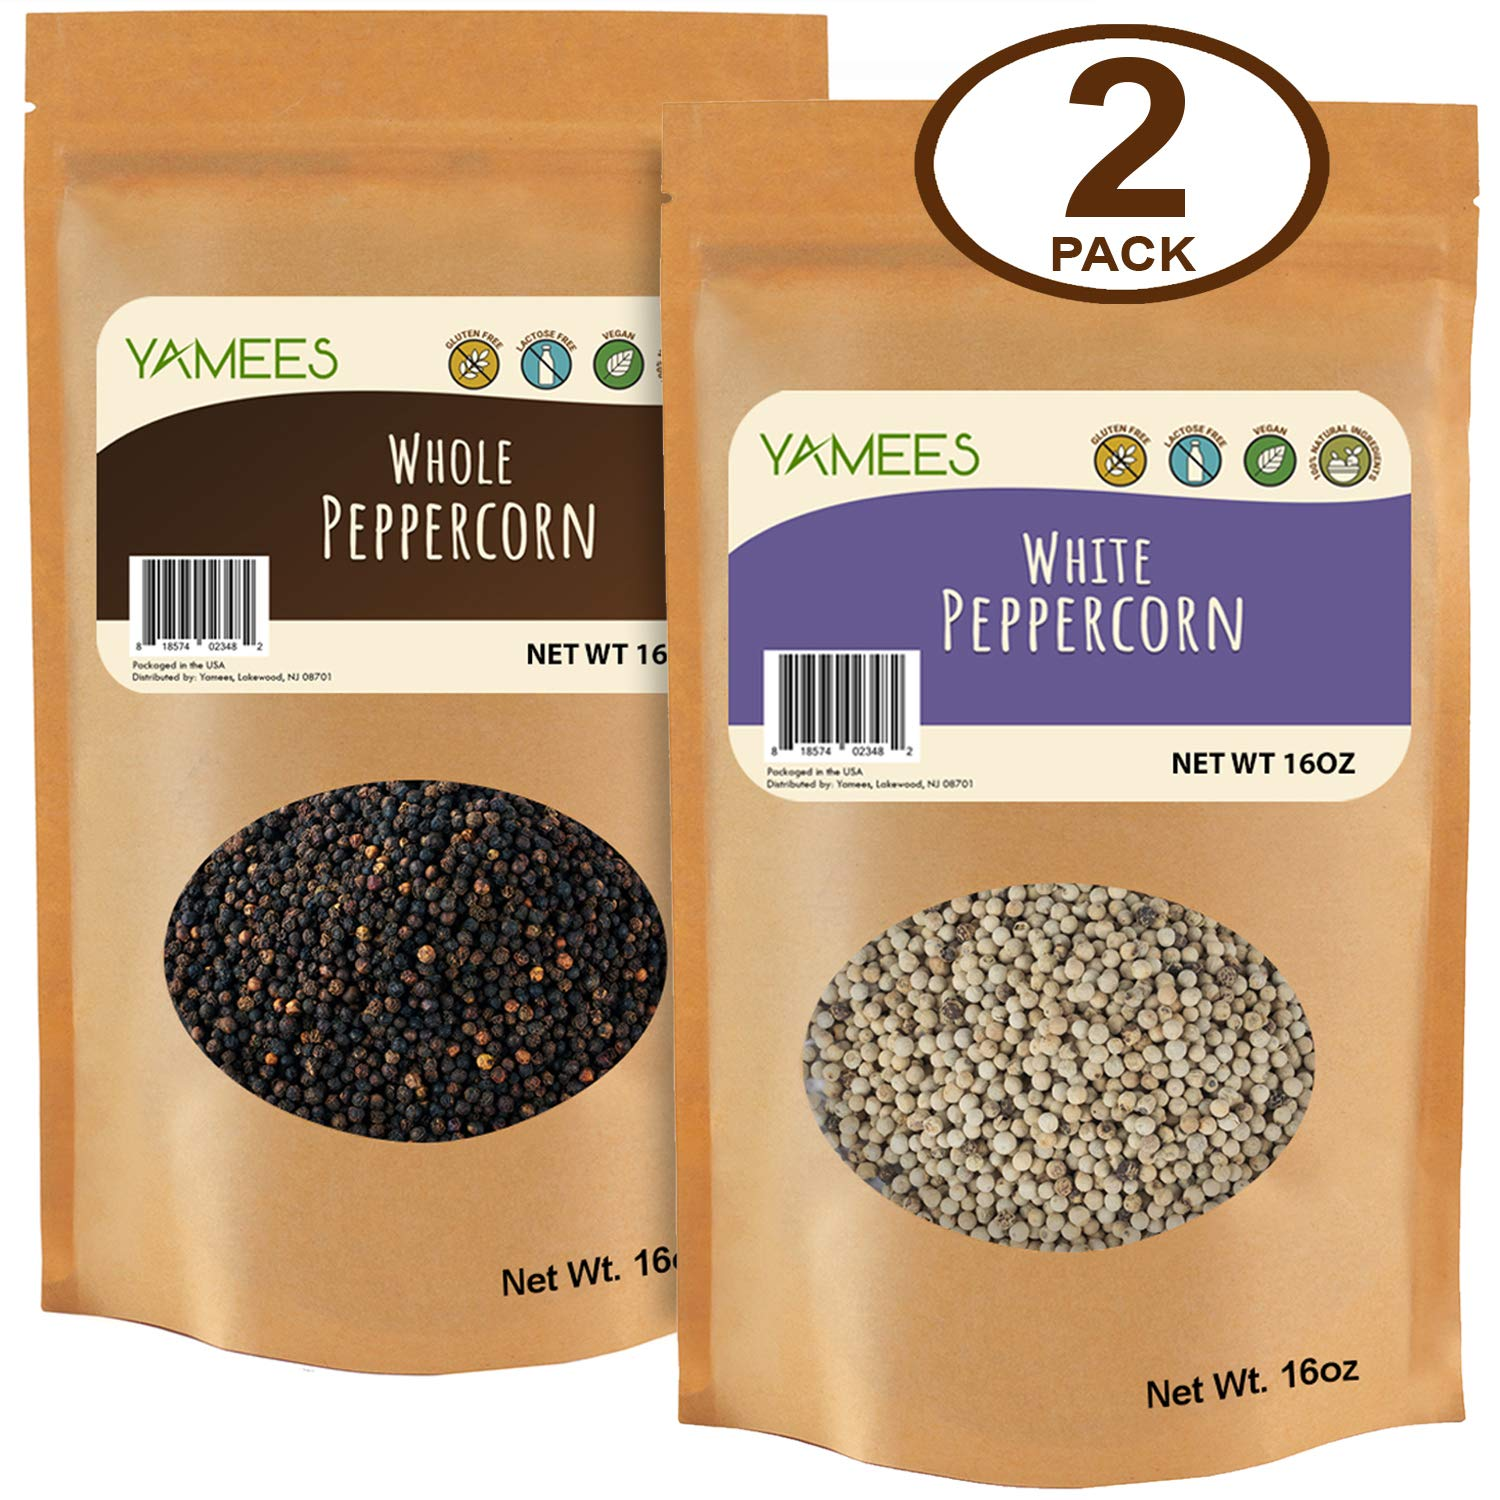 Peppercorns - Black Peppercorns - Whole White Peppercorns - Bulk Spices - 2 Pack of 16 Ounce Each by YAMEES